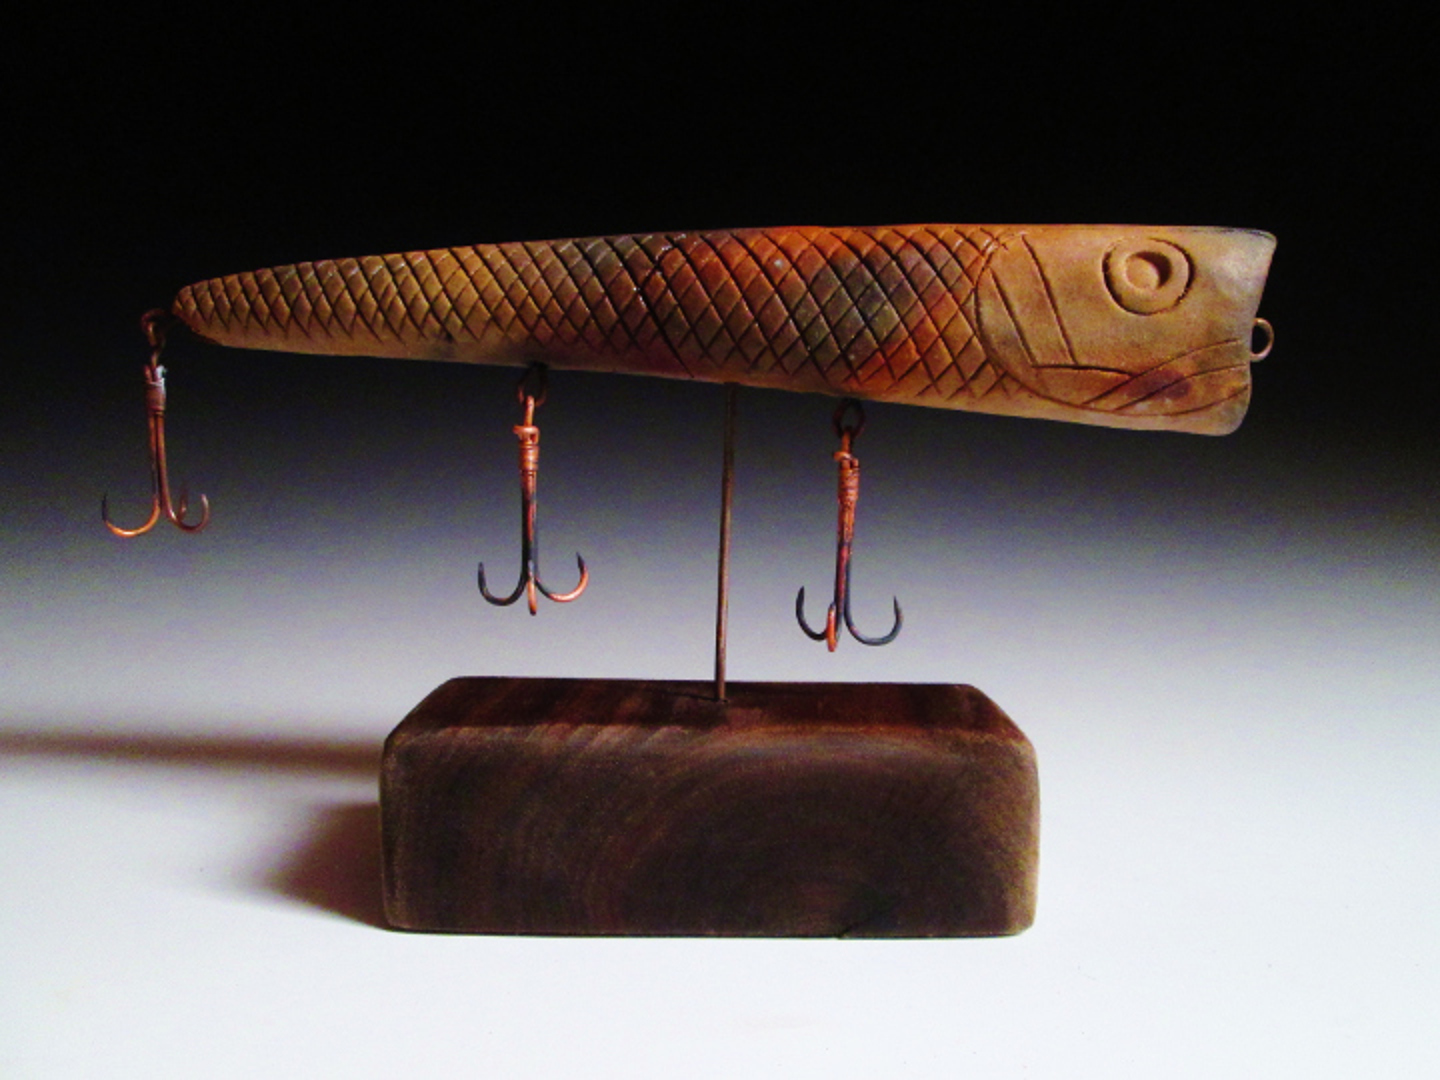 Mounted Lure, Natural Clay  9x5x2.5  Ceramic and Reclaimed Material $250.JPG